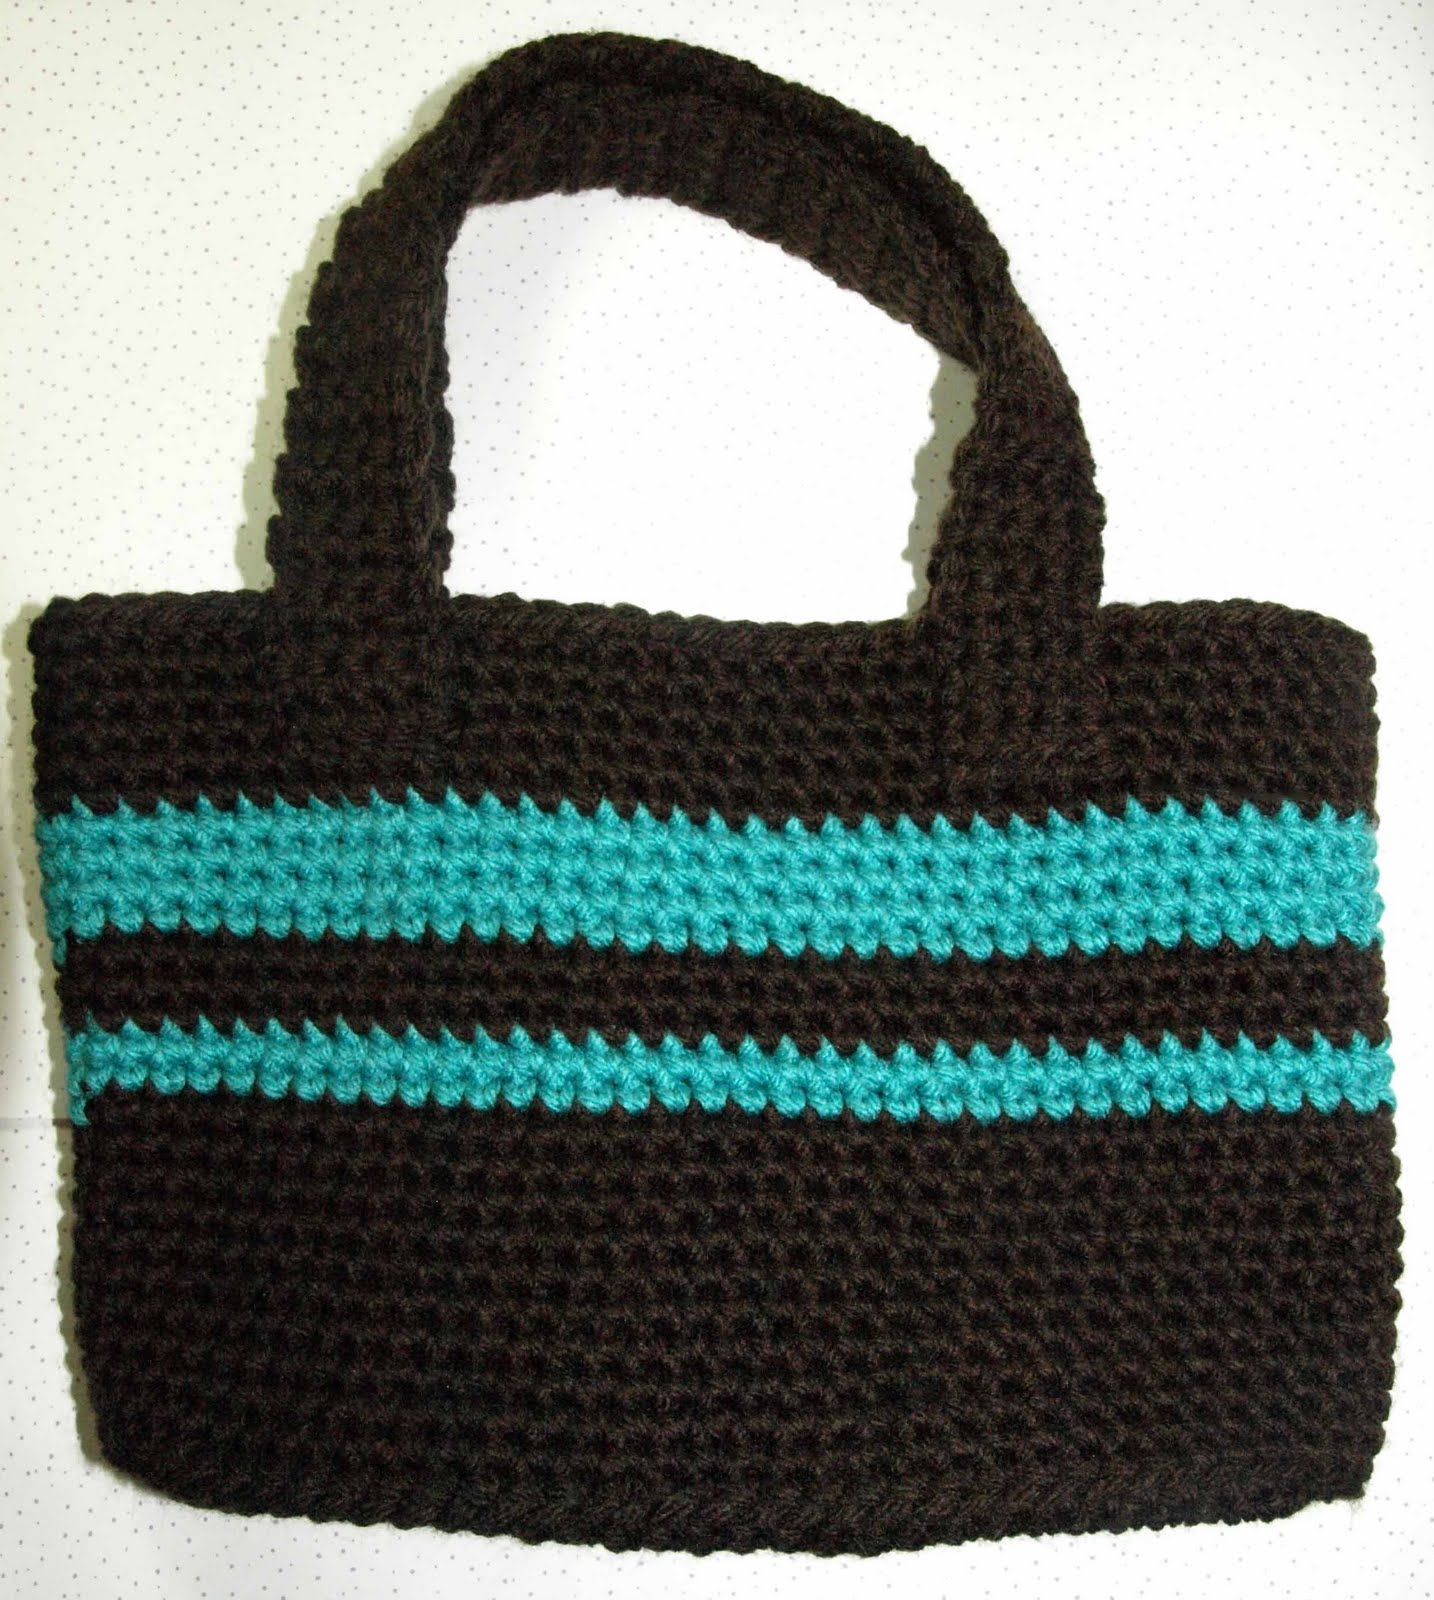 CrochetByKarin: Crochet Purse - free pattern